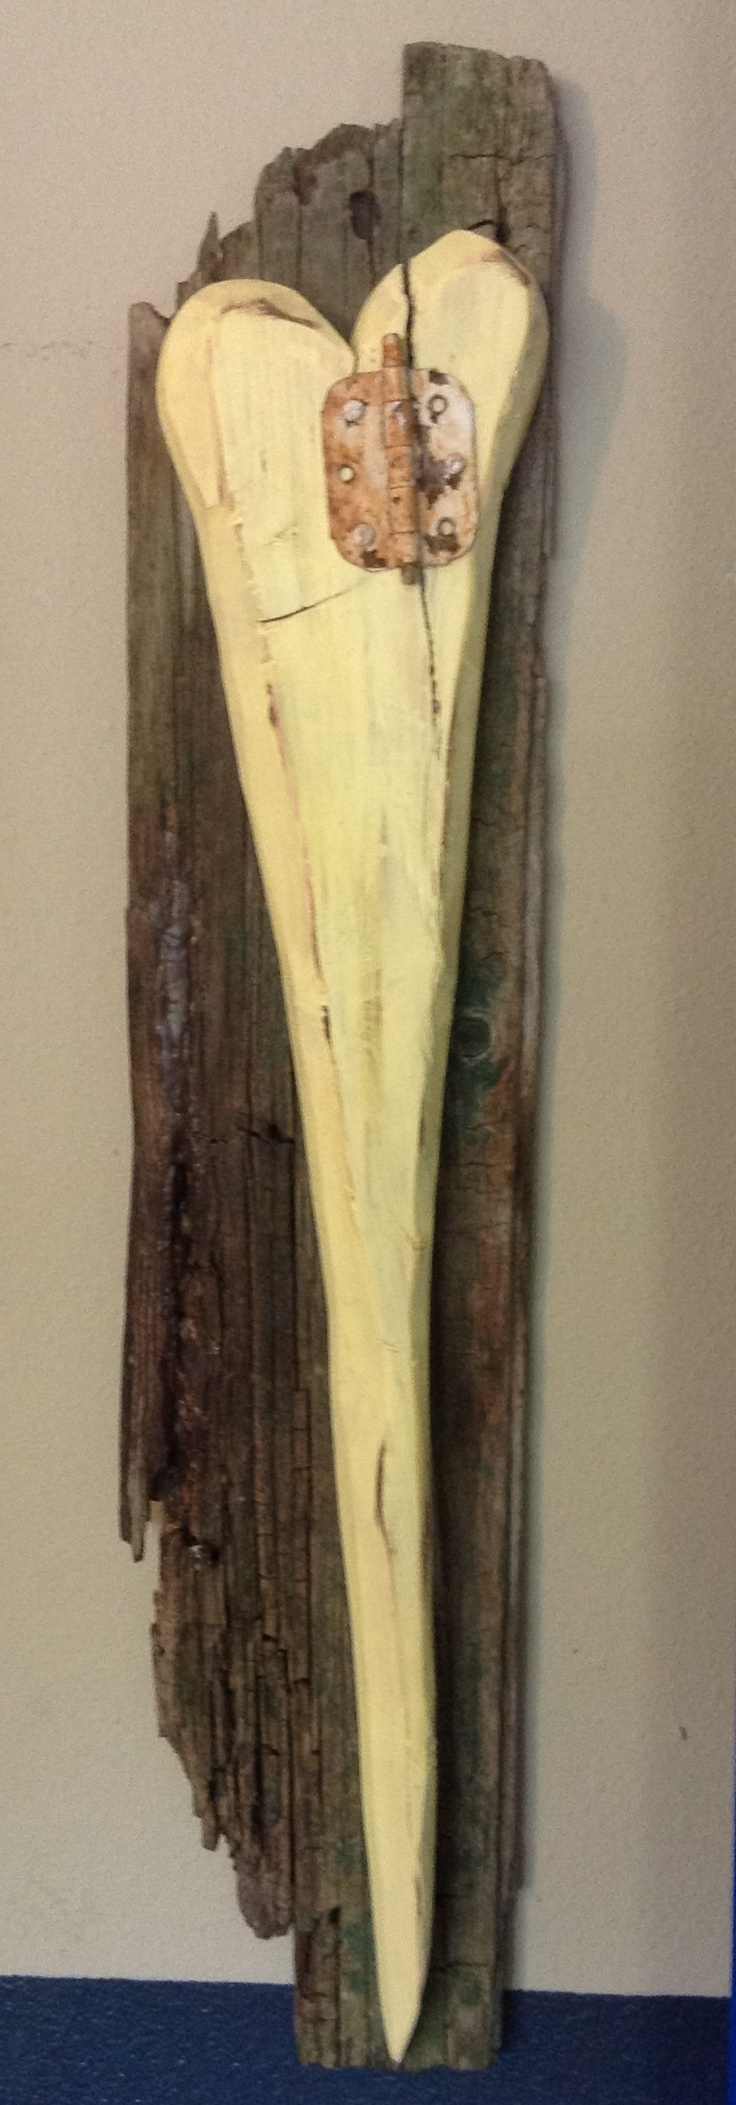 Mended Heart. Created by wife, handcrafted by husband. Mounted on rescued wood.